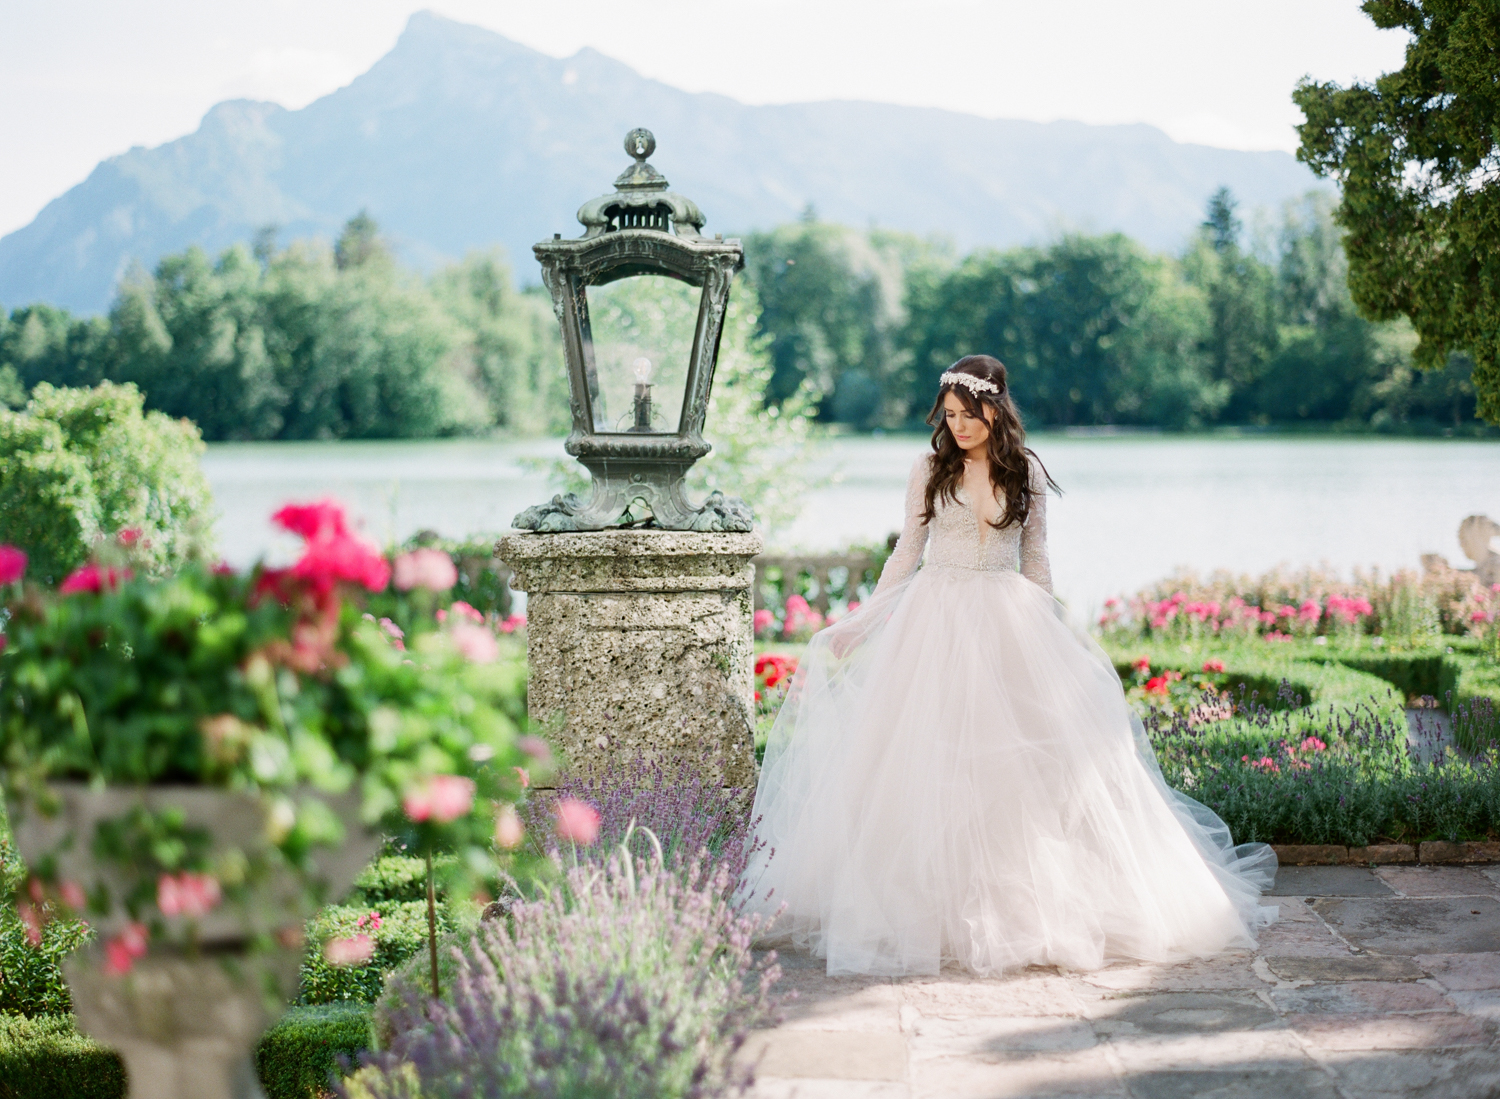 lake_como_wedding_photographer_nikol_bodnarova_184.JPG